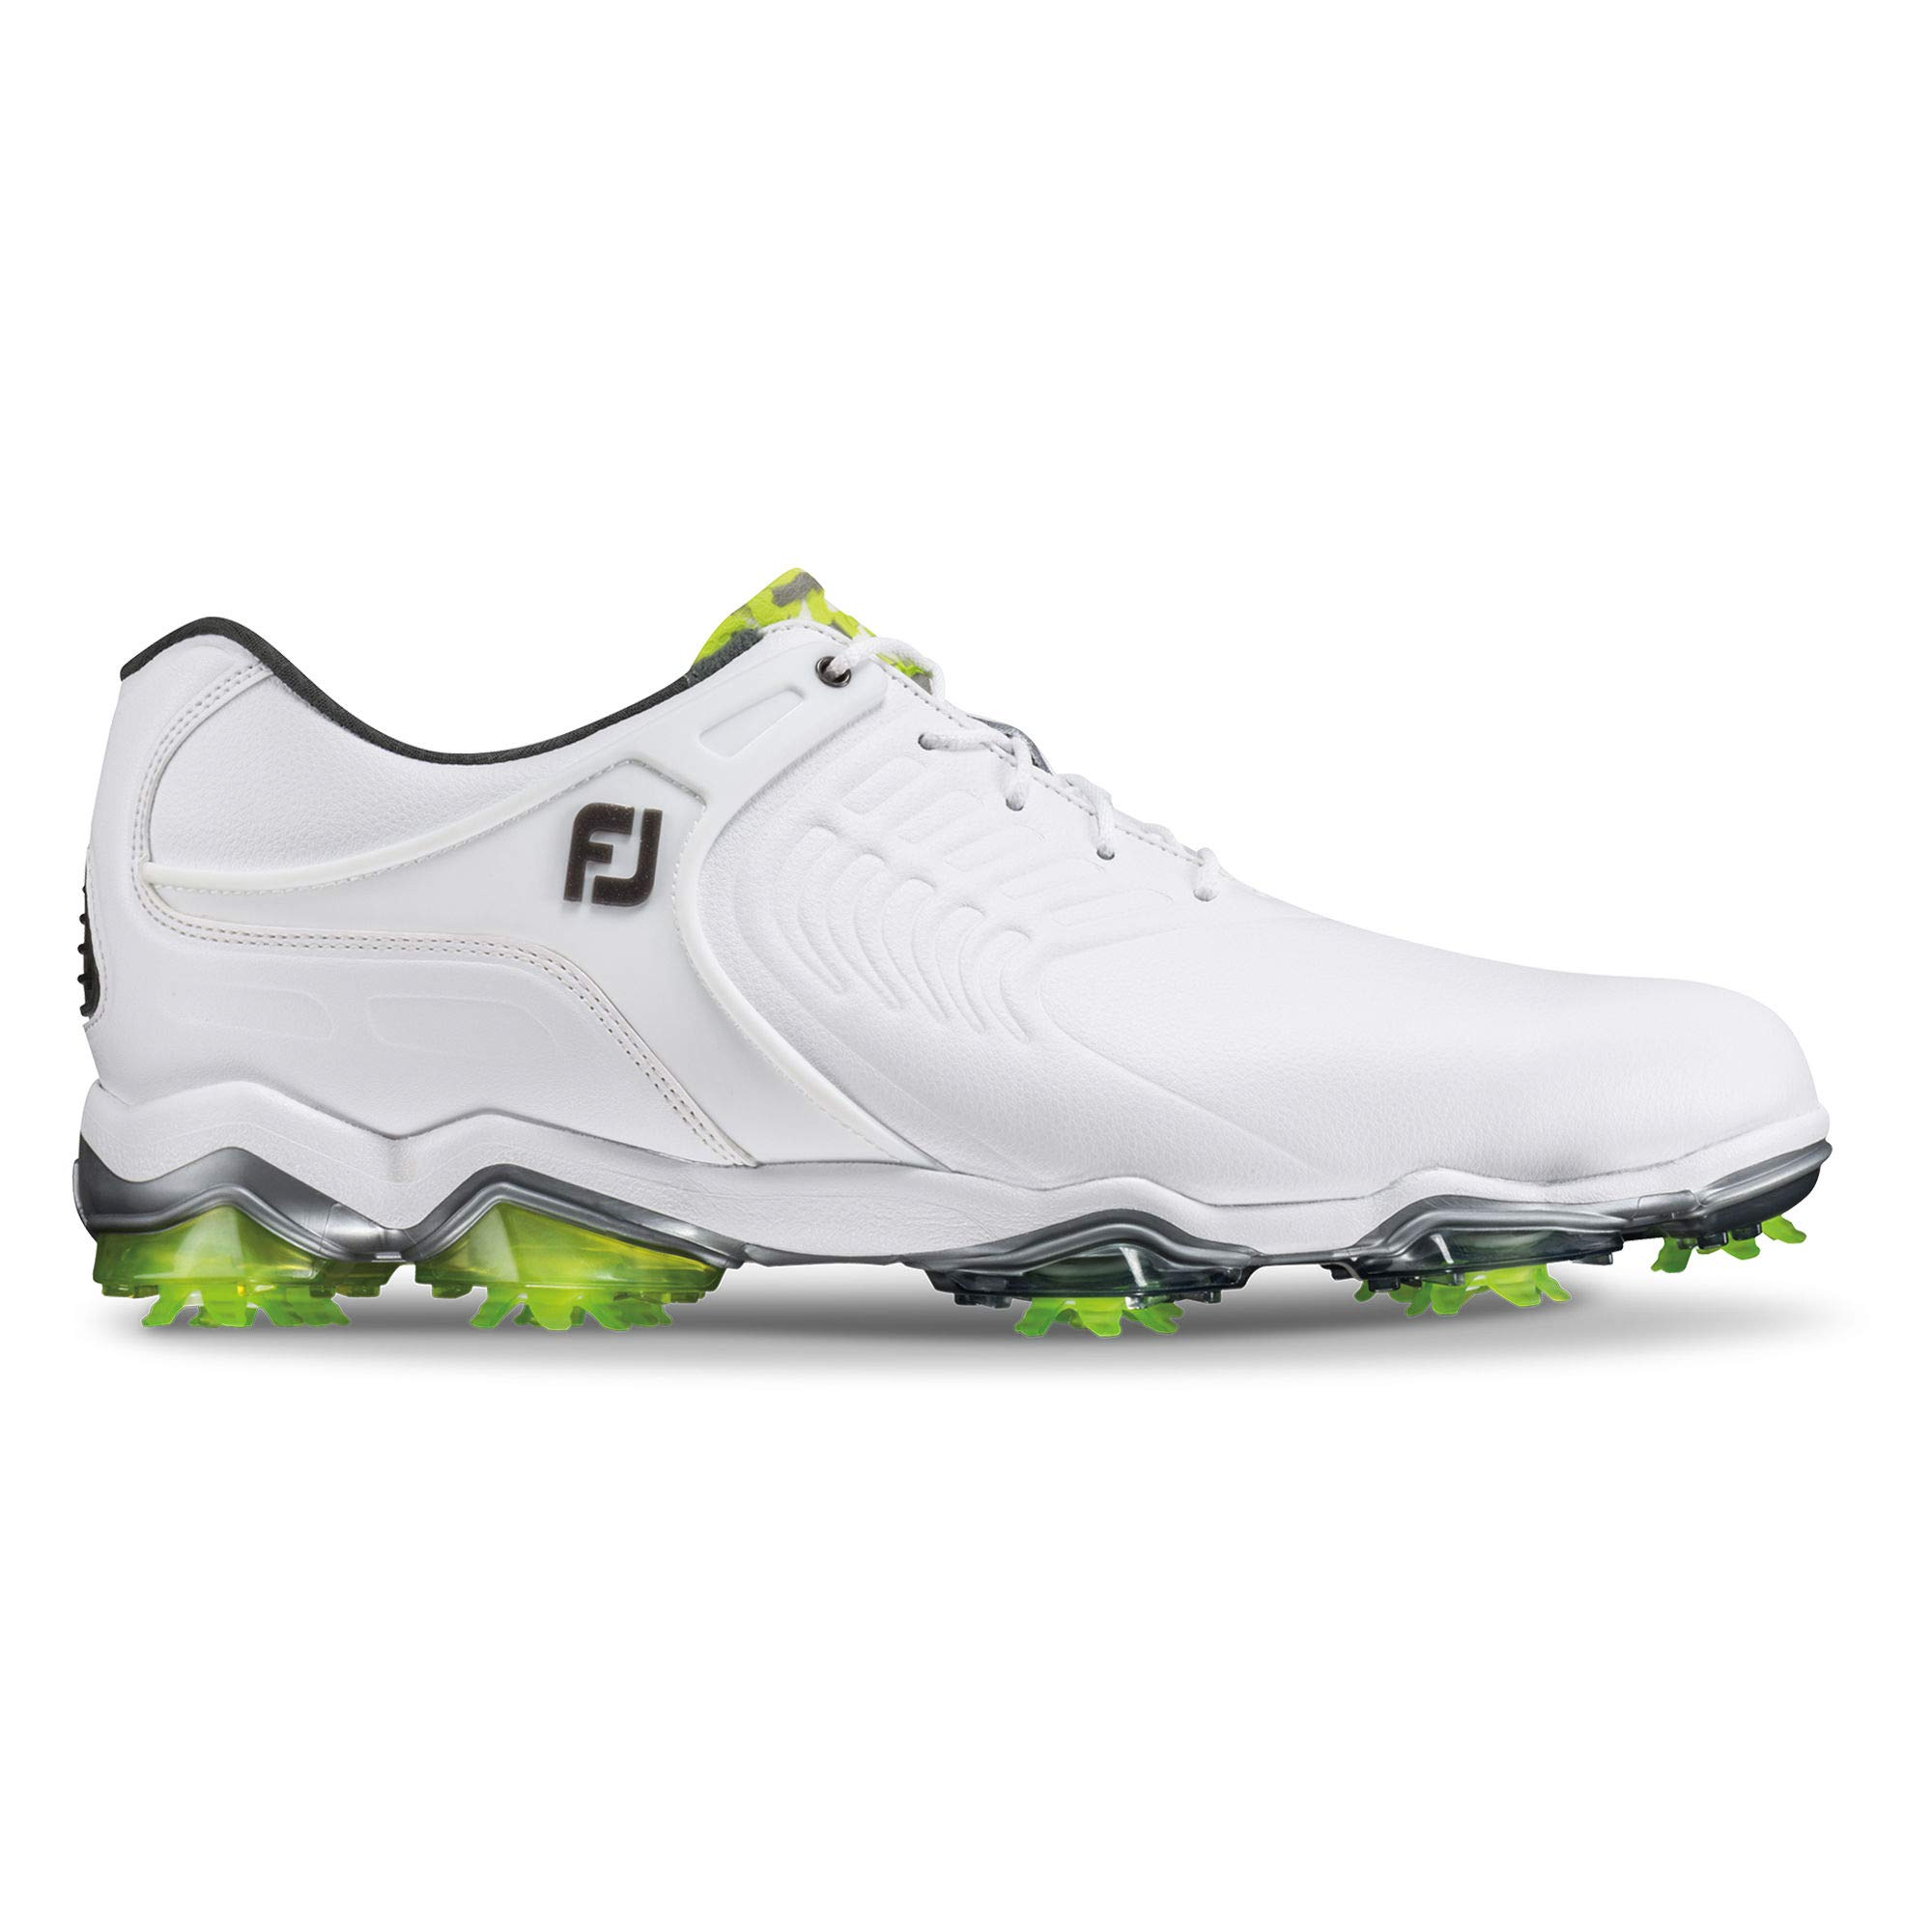 FootJoy Men's Tour-S Golf Shoes White 7 W US by FootJoy